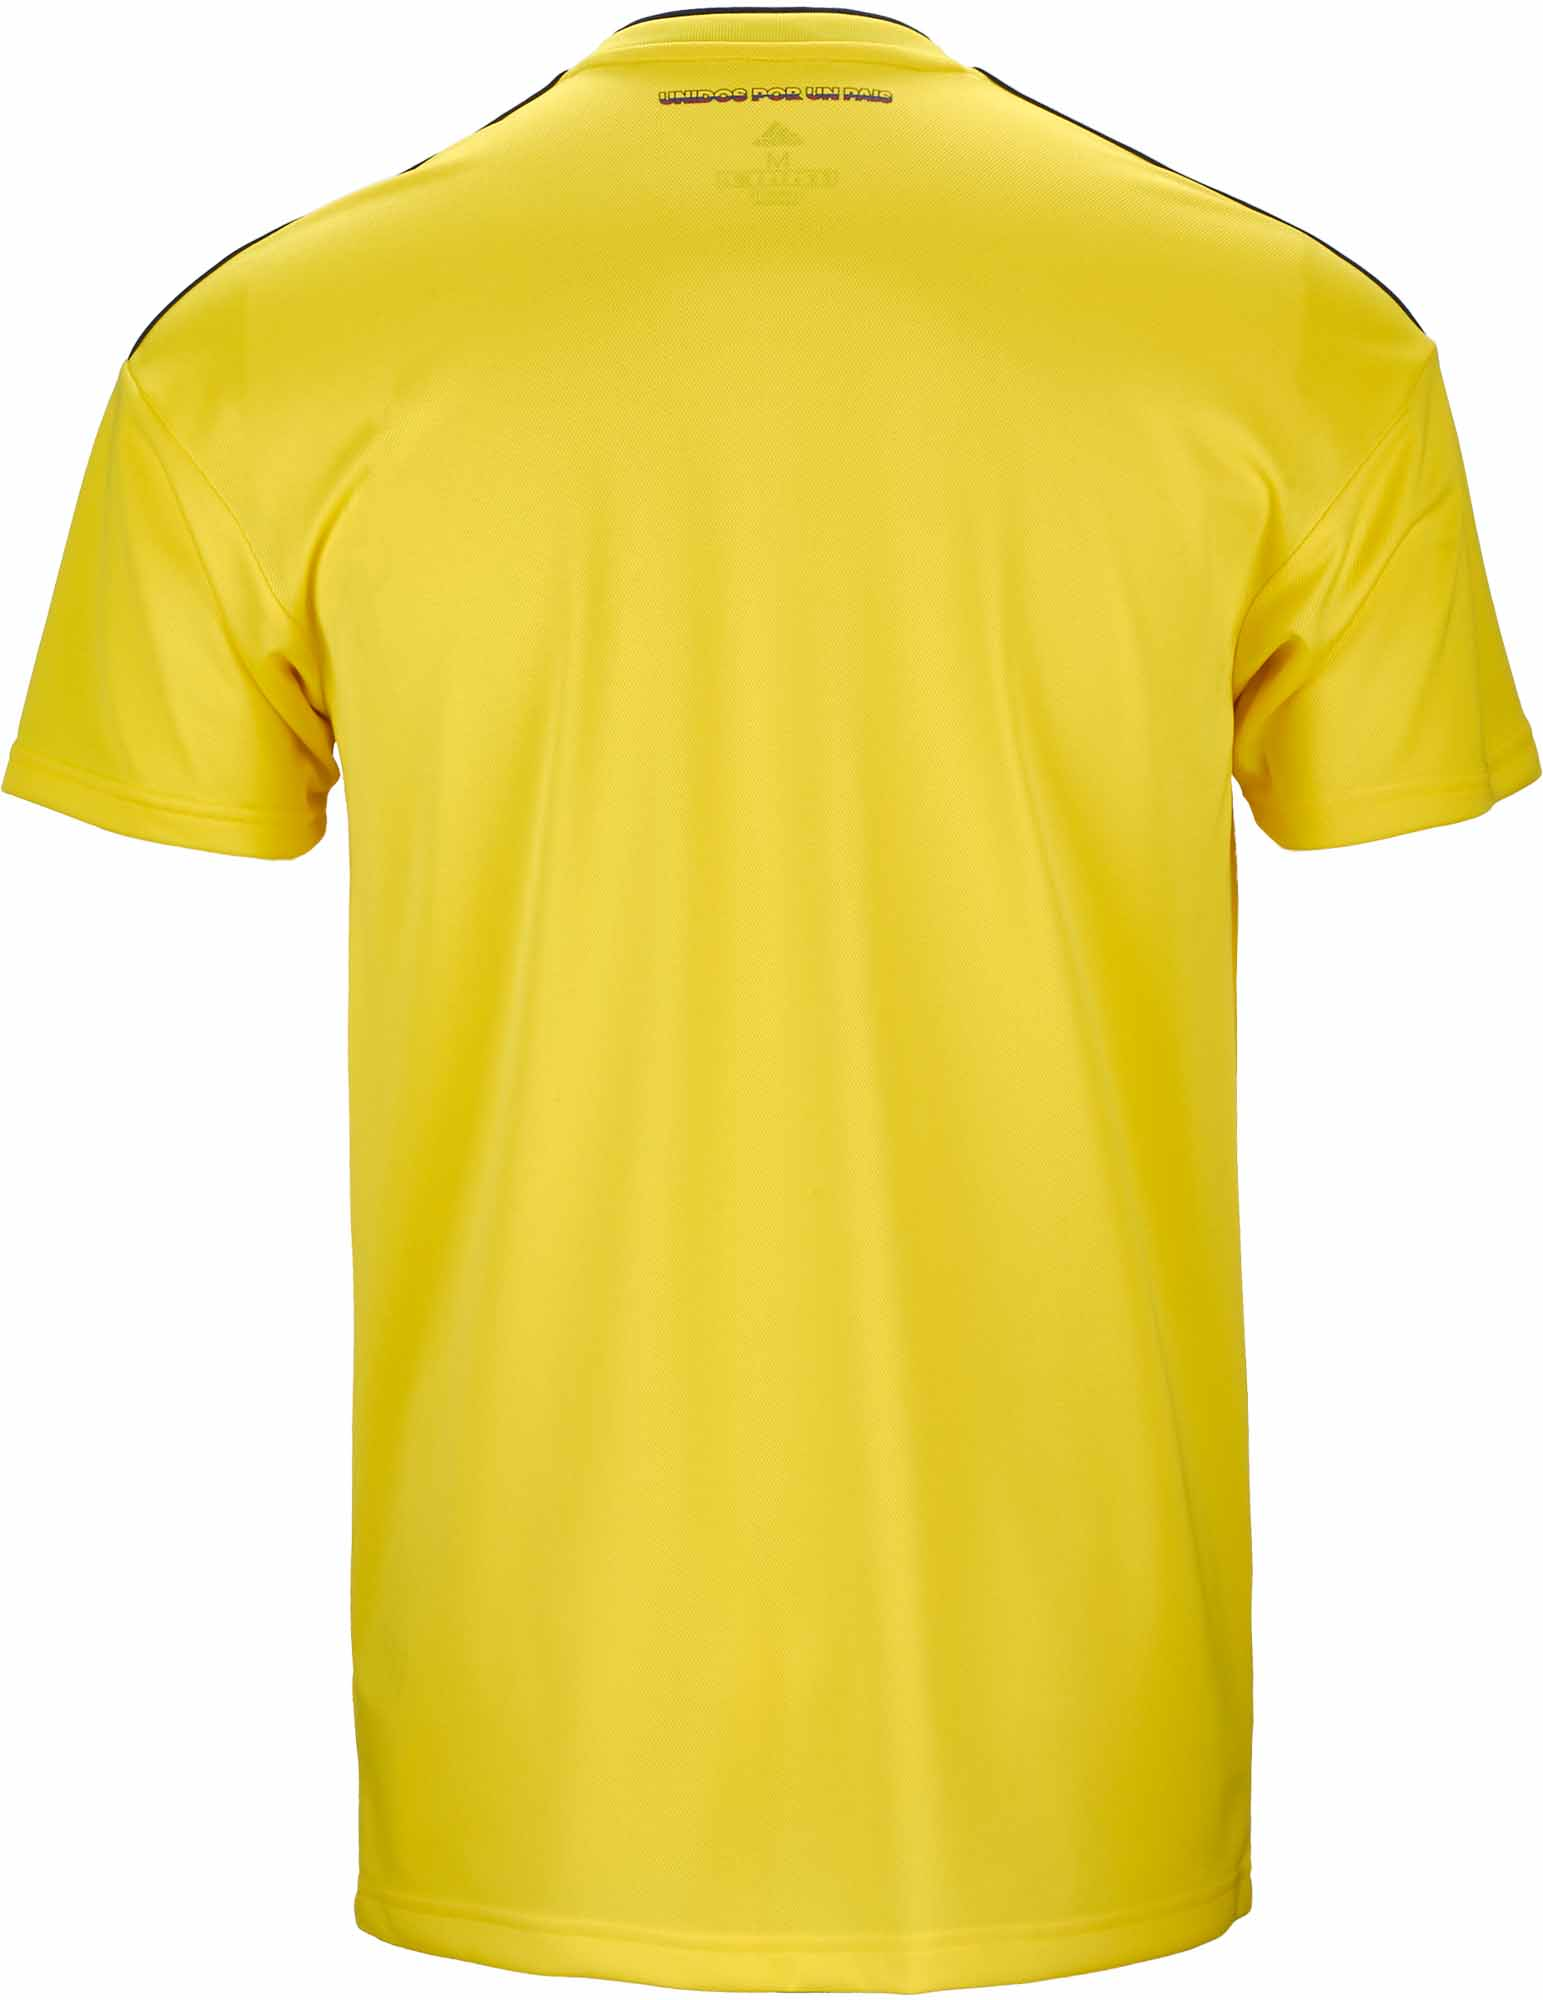 389308b73 2018 19 adidas Colombia Home Jersey - Soccer Master